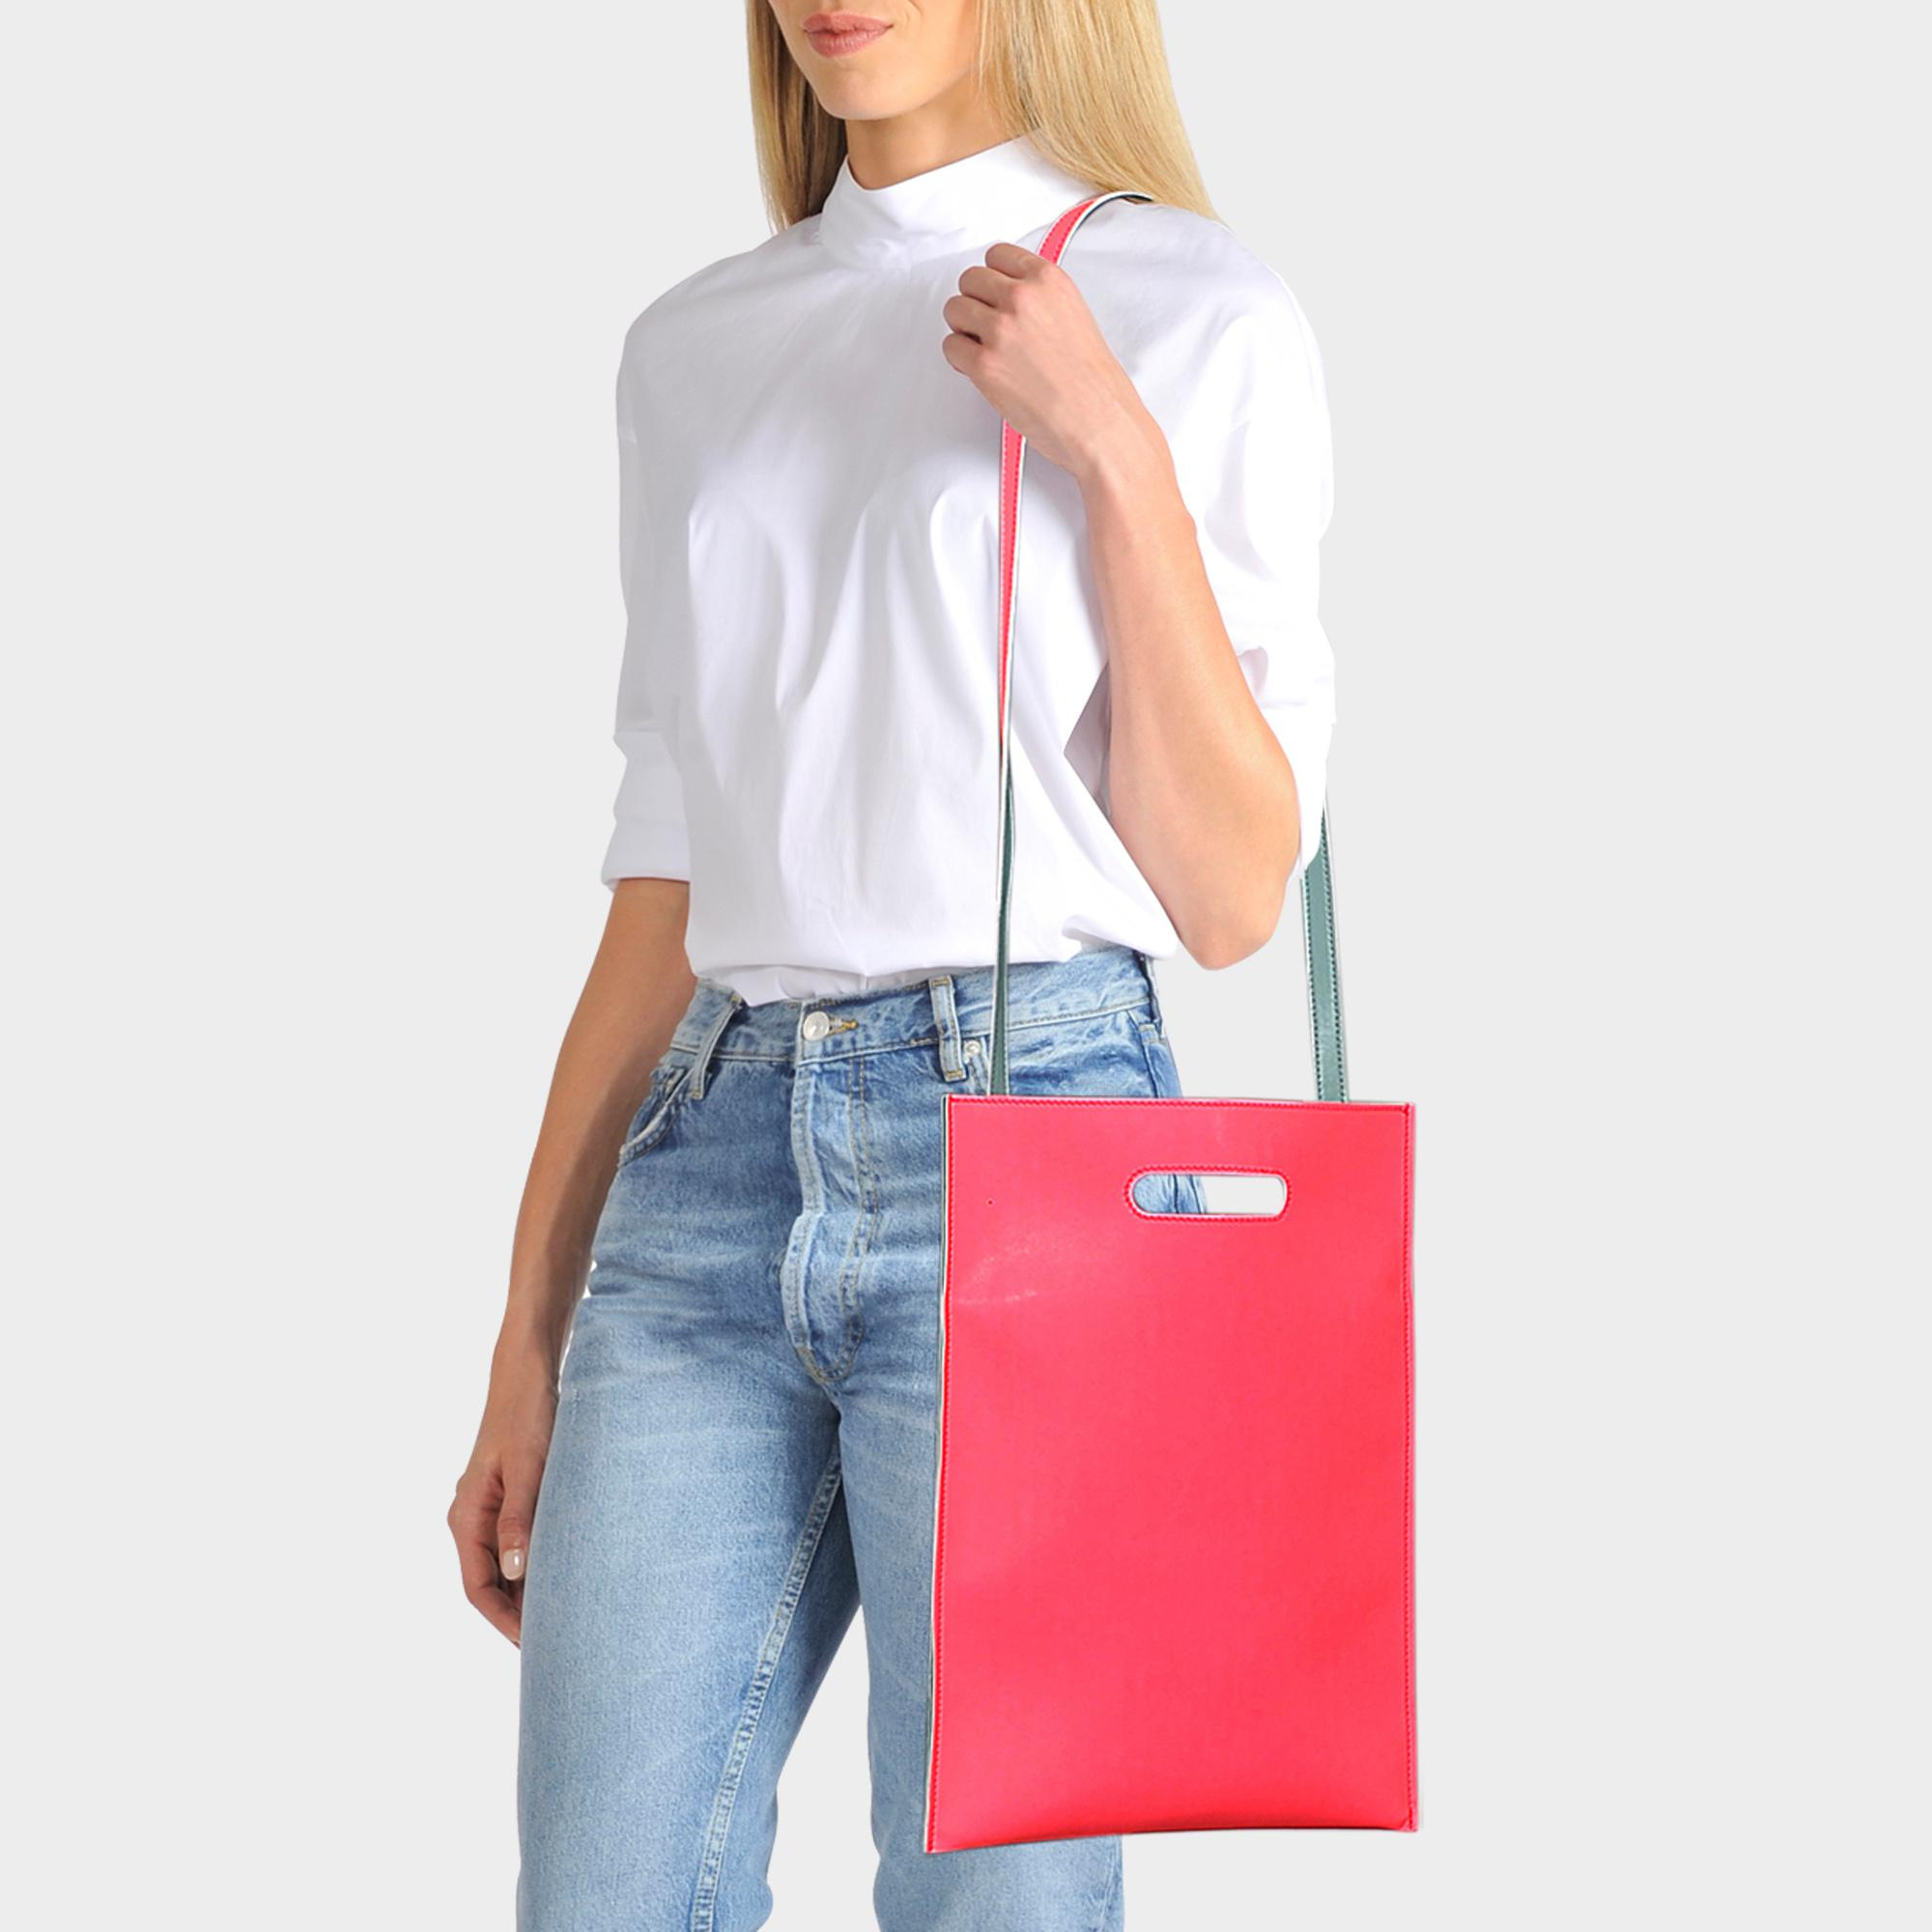 Hand Carry Plastic Bag in Neon Pink Synthetic Leather Maison Martin Margiela